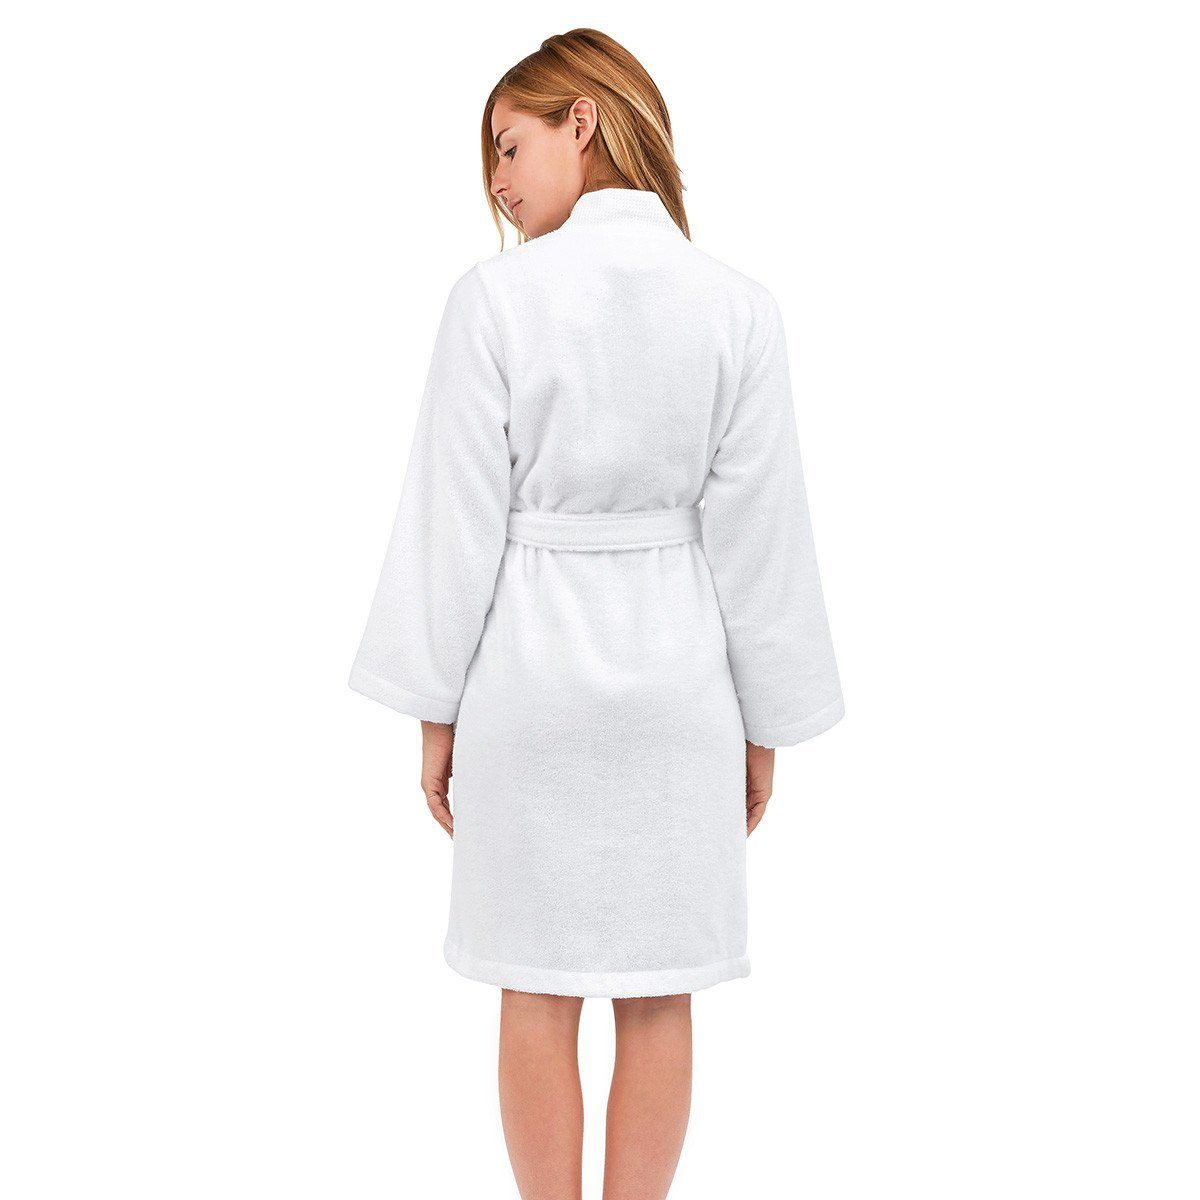 Astrée Kimono Blanc Bathrobe by Yves Delorme | Fig Linens - White bath robe, back